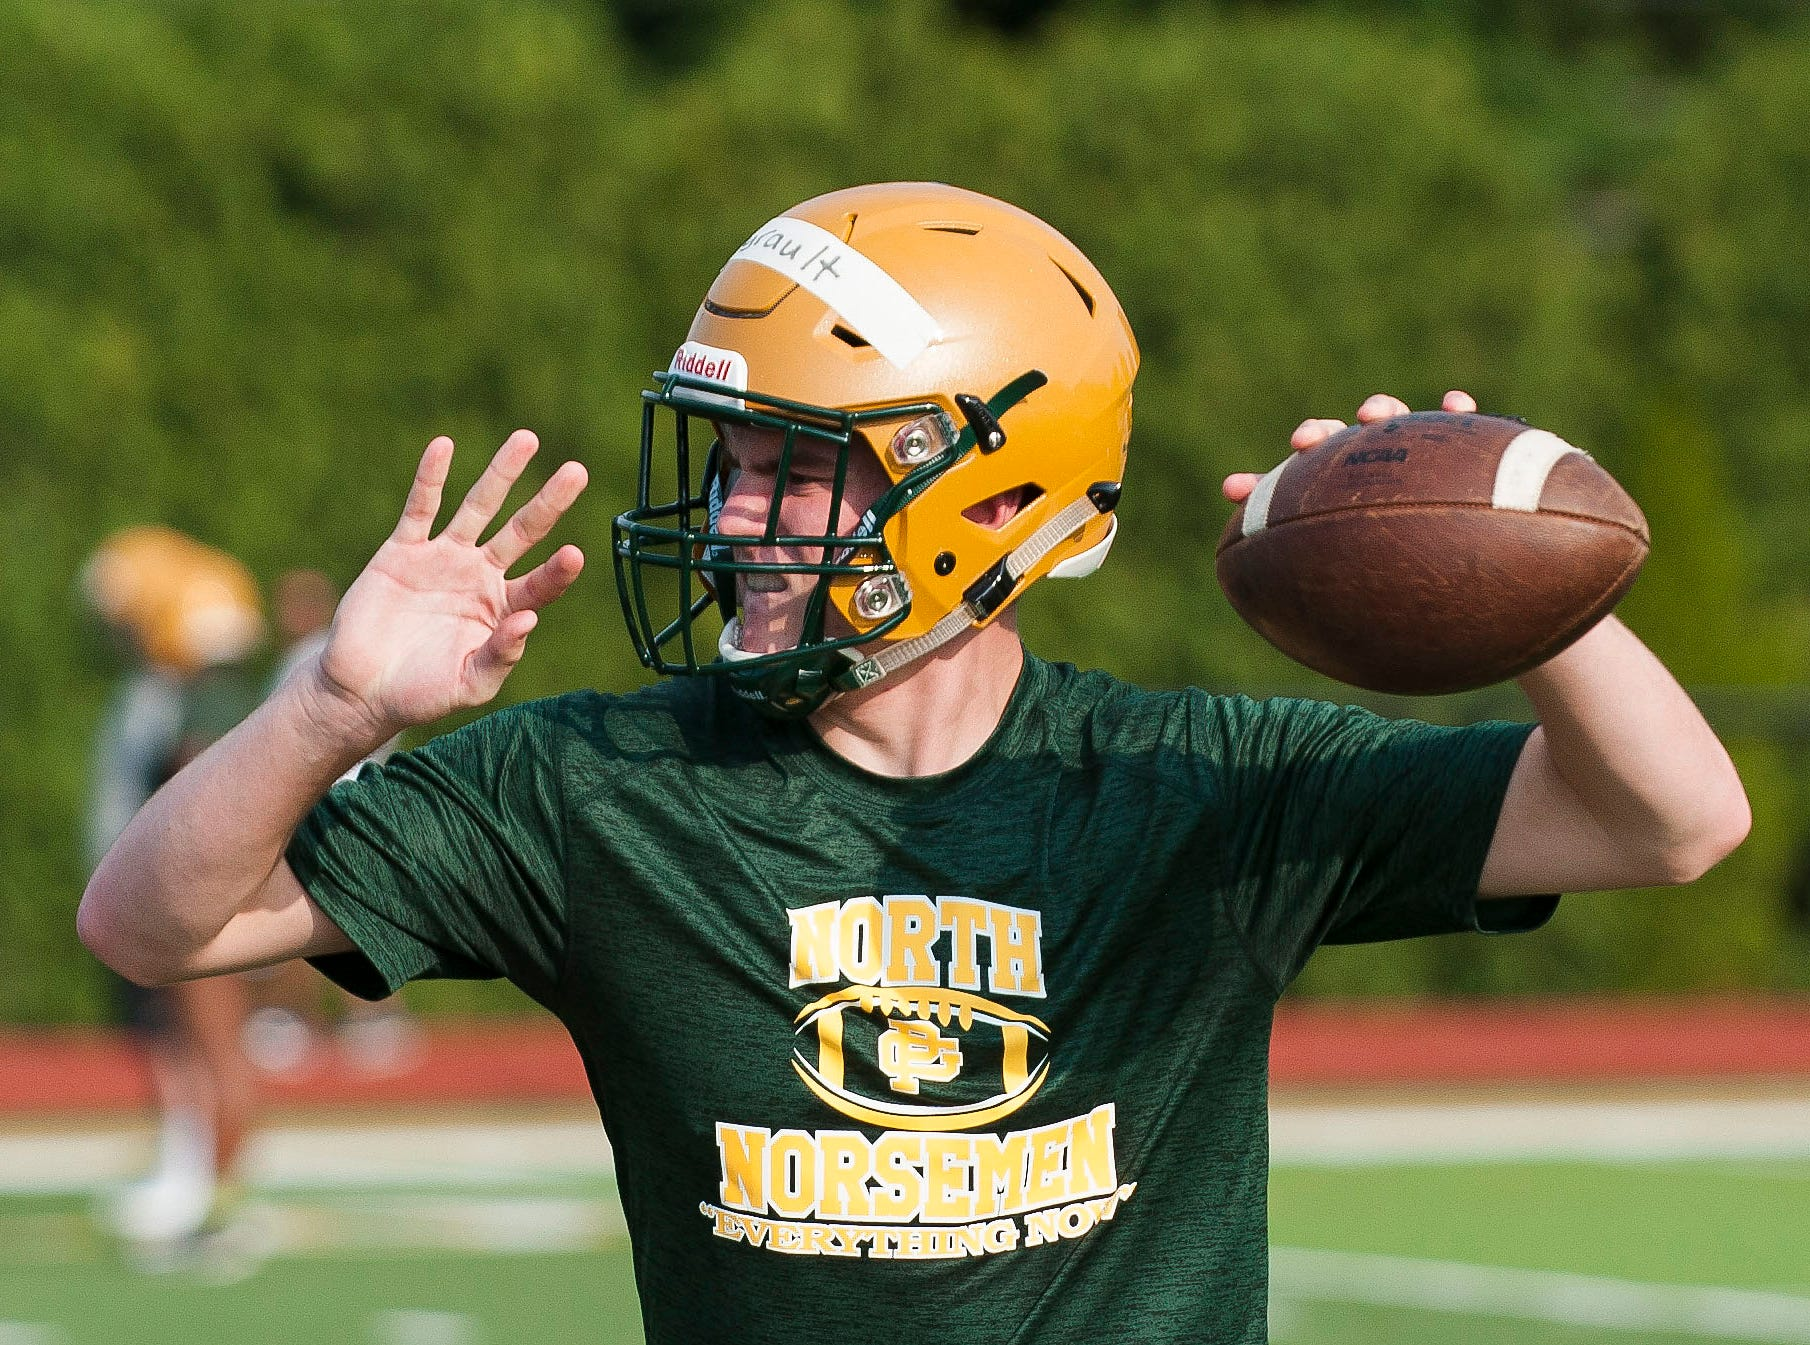 Quarterback Joe Ayrault throws a pass during the first practice of the season Monday.